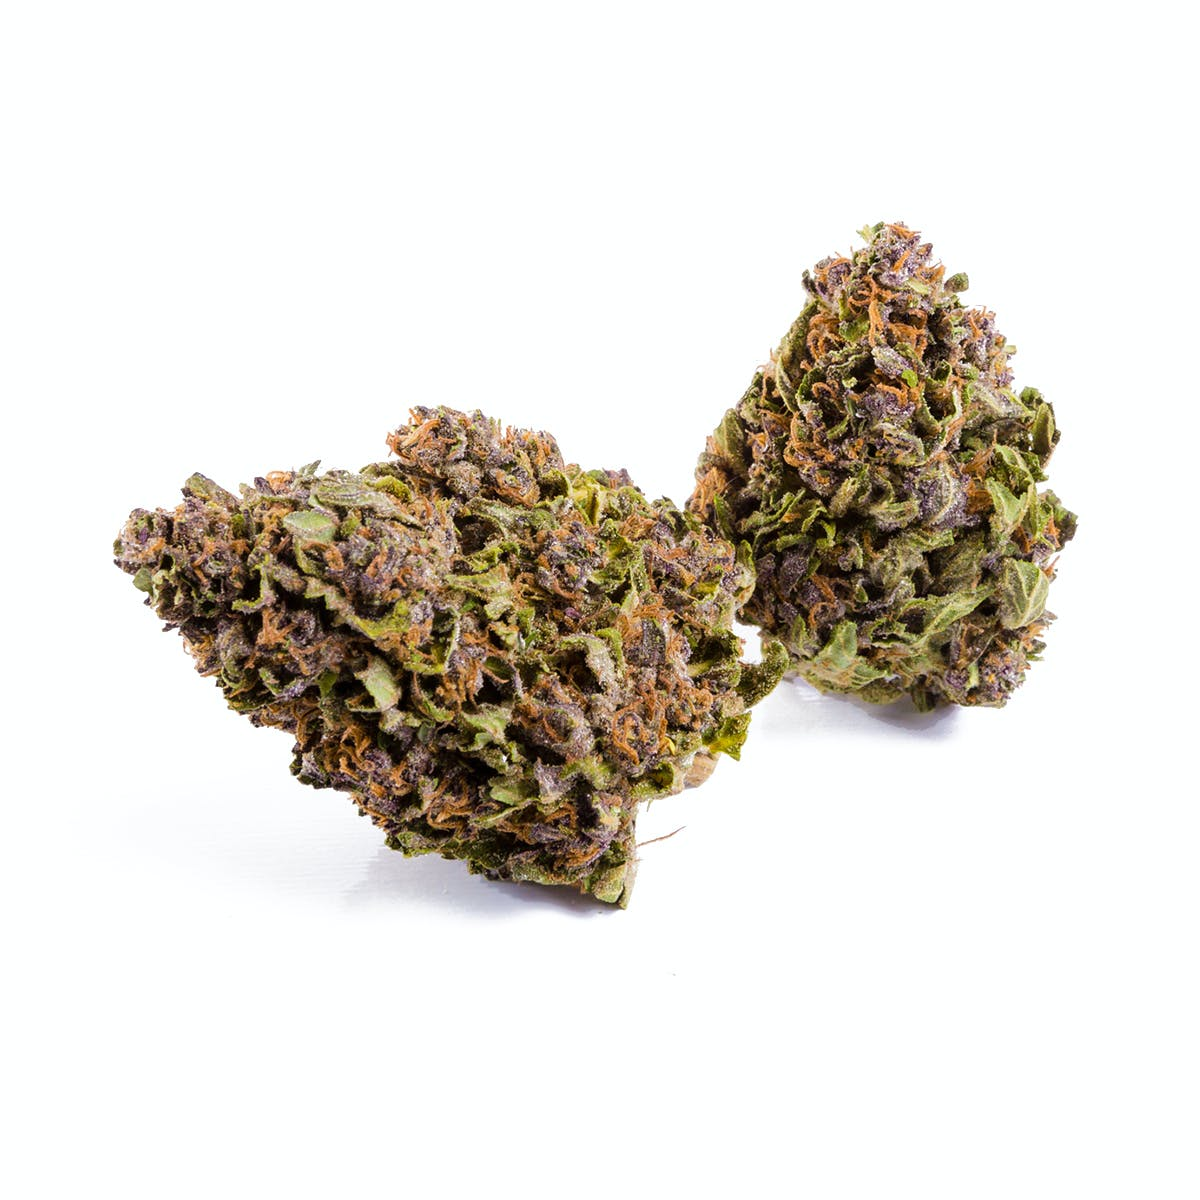 Millerville Farms   Featured Products & Details   Weedmaps